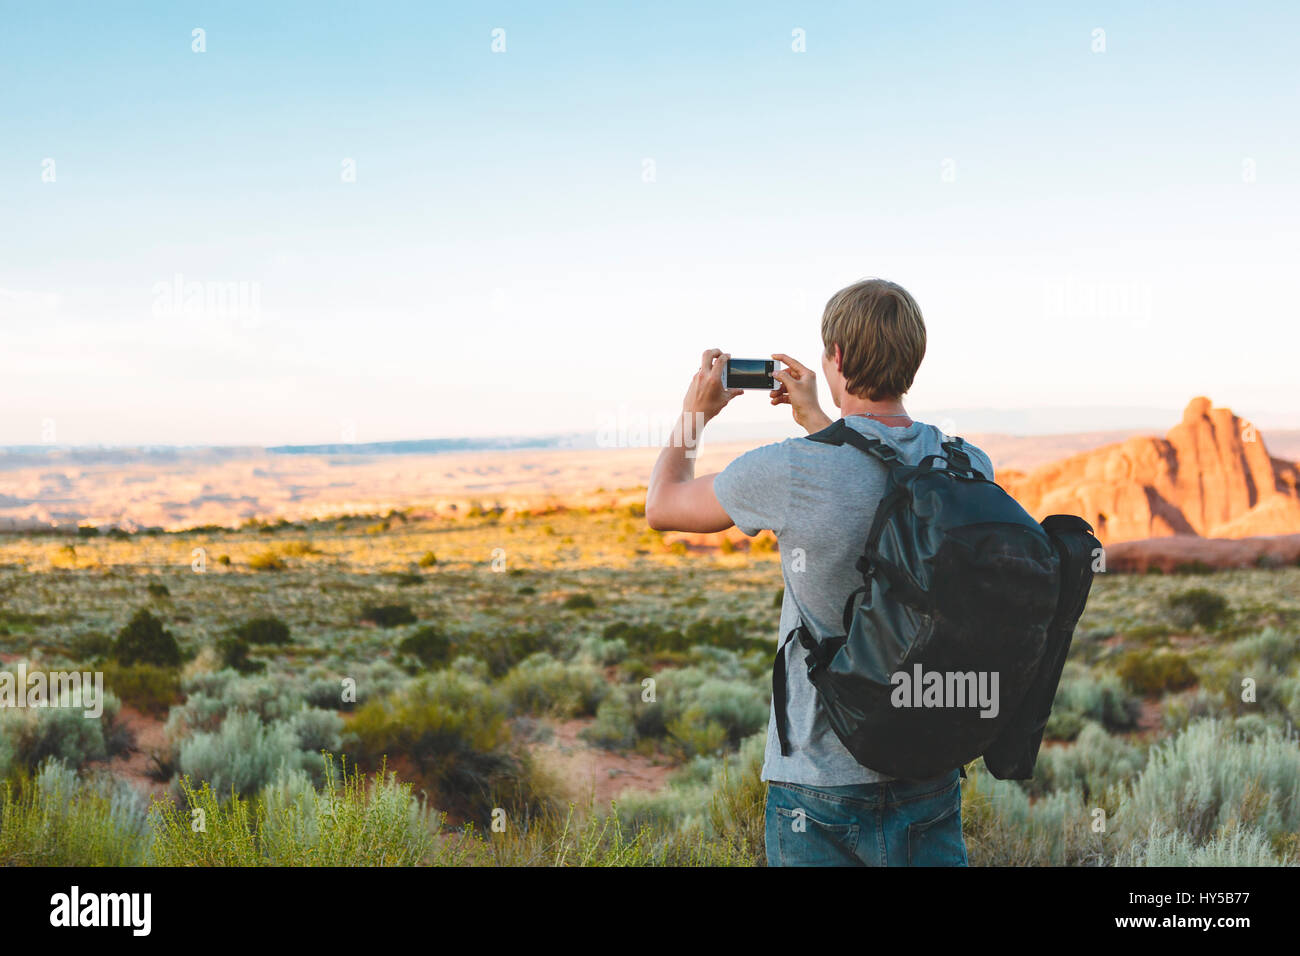 USA, Utah, Moab, Arches National Park, Man photographing landscape - Stock Image